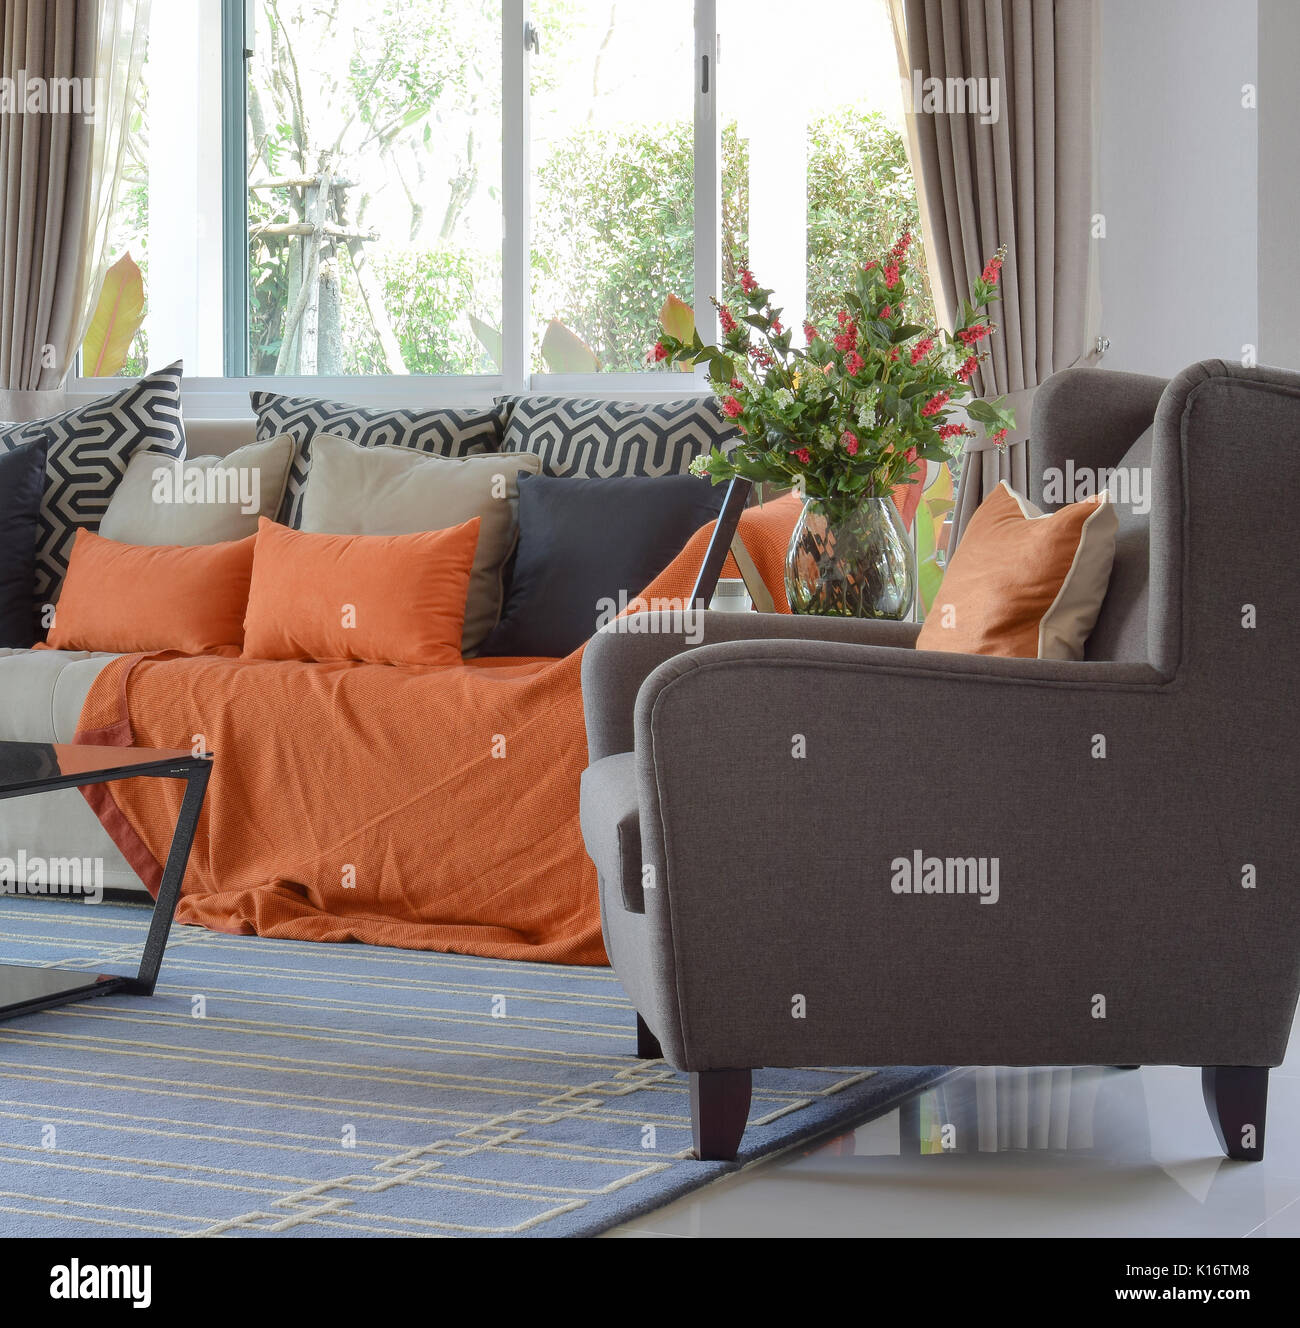 Remarkable Modern Living Room Design With Brown And Orange Tweed Sofa Onthecornerstone Fun Painted Chair Ideas Images Onthecornerstoneorg